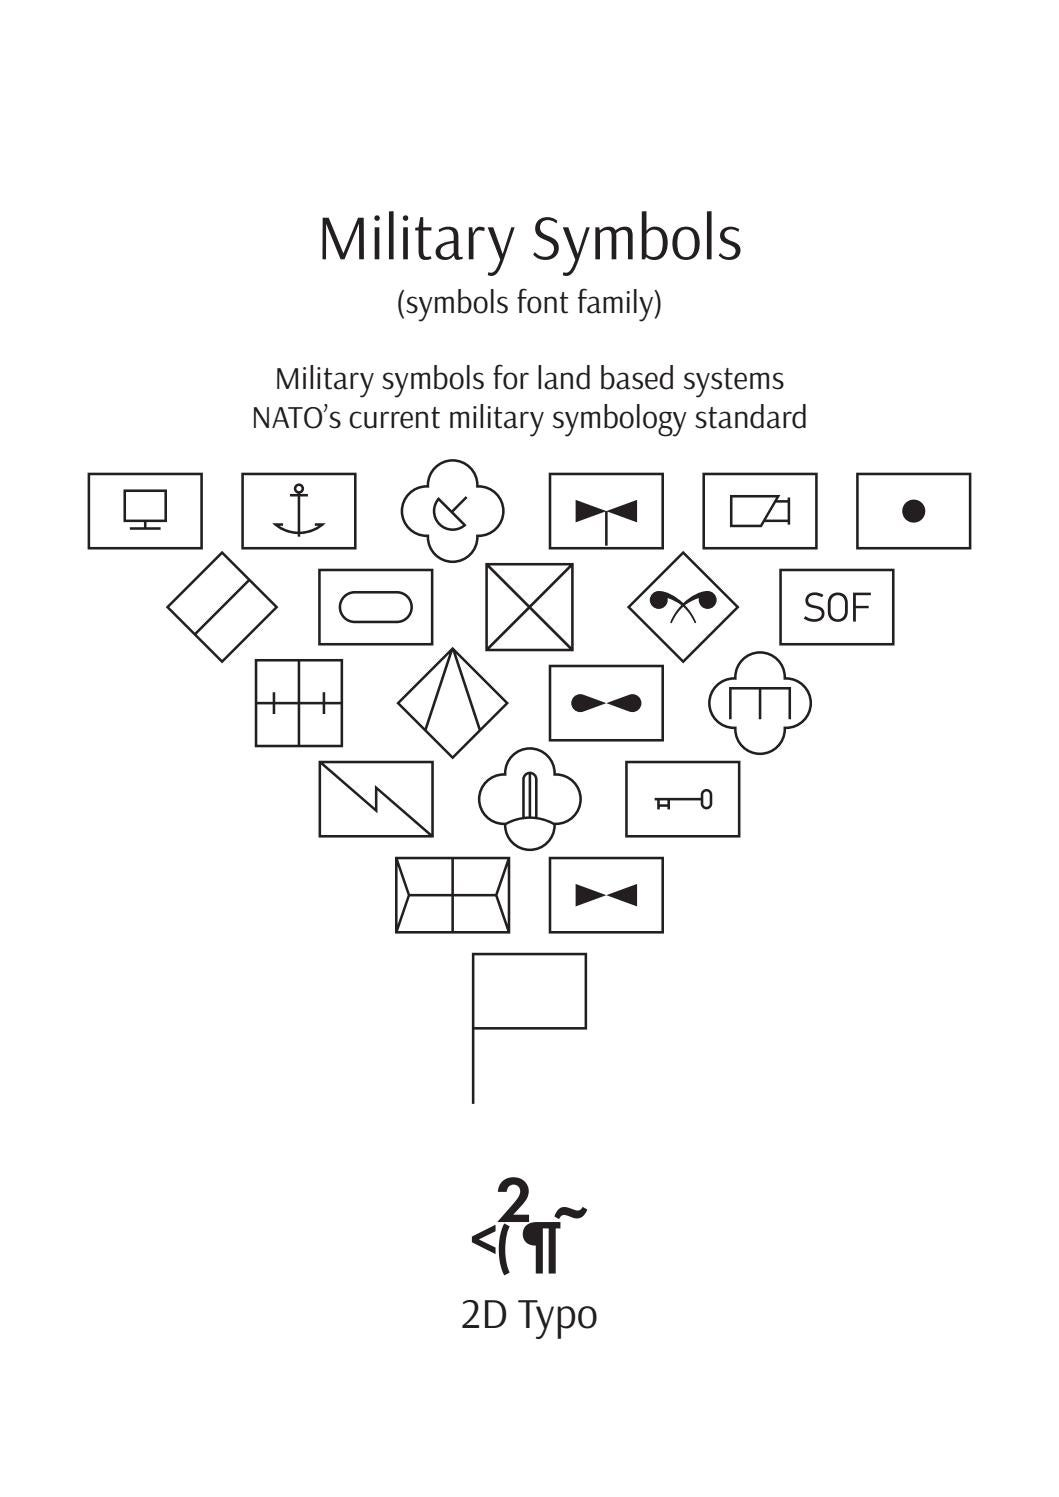 Military Symbols Demo Fonts Family By 2d Studio Issuu